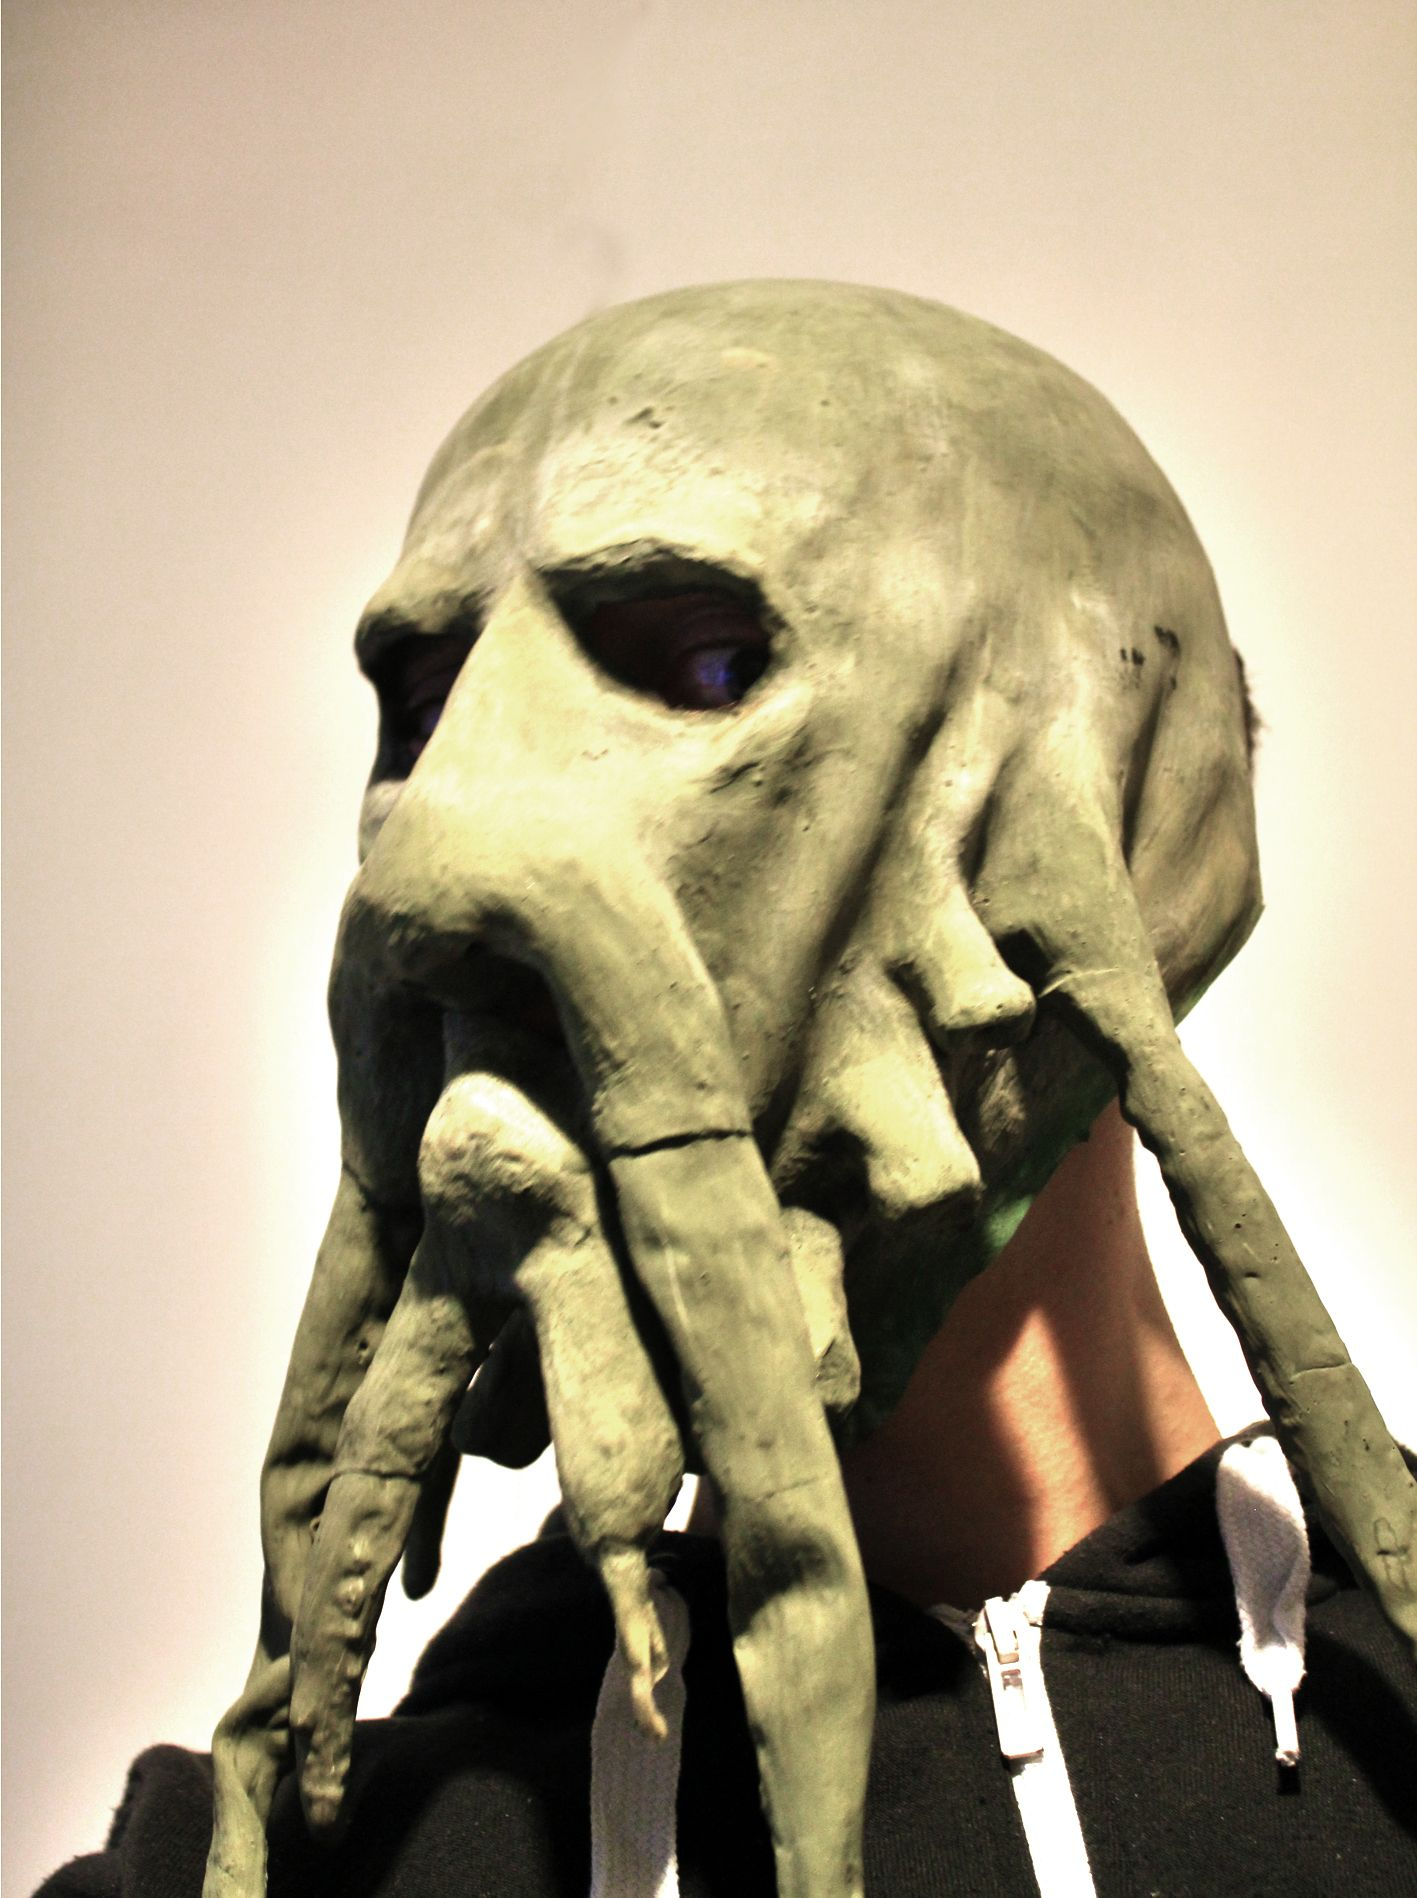 Davy Jones Mask Pirates of the caribbean | Make up | Pinterest ...